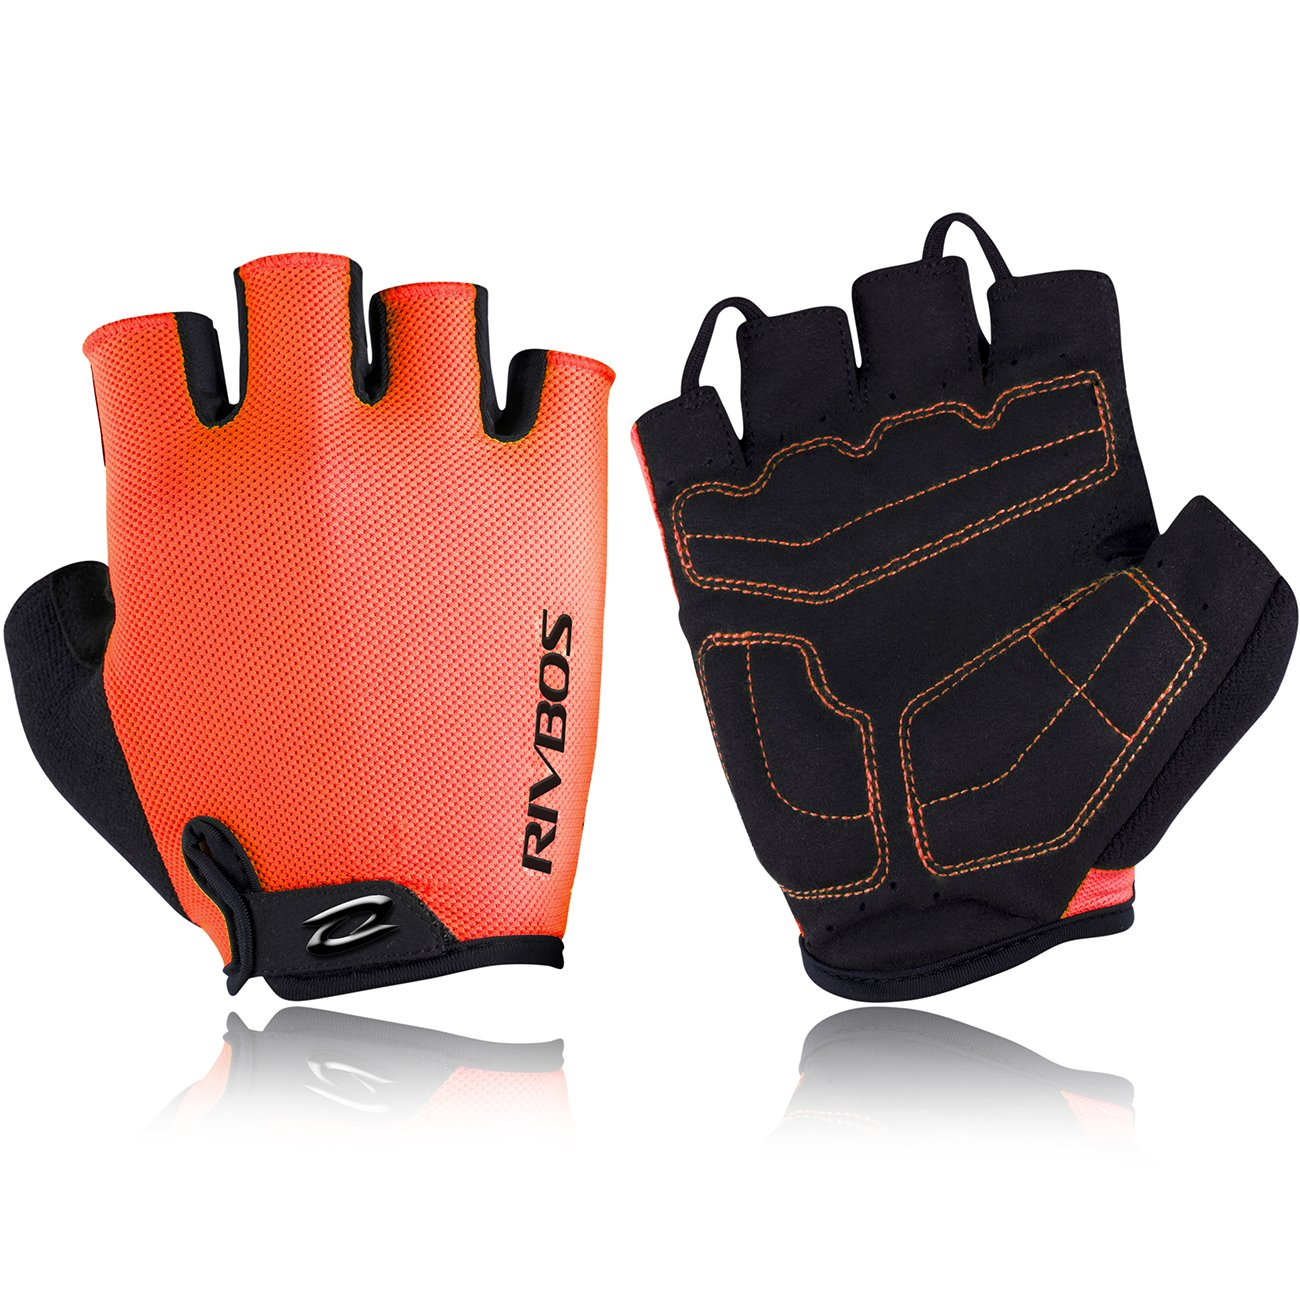 RIVBOS Bike Gloves Cycling Gloves Fingerless for Men Women with Foam Padding Breathable Mesh Fashion Design for Mountain Bicycle Motorcycle Riding Driving Sports Outdoors Exercise CHG001 (Orange M) by RIVBOS